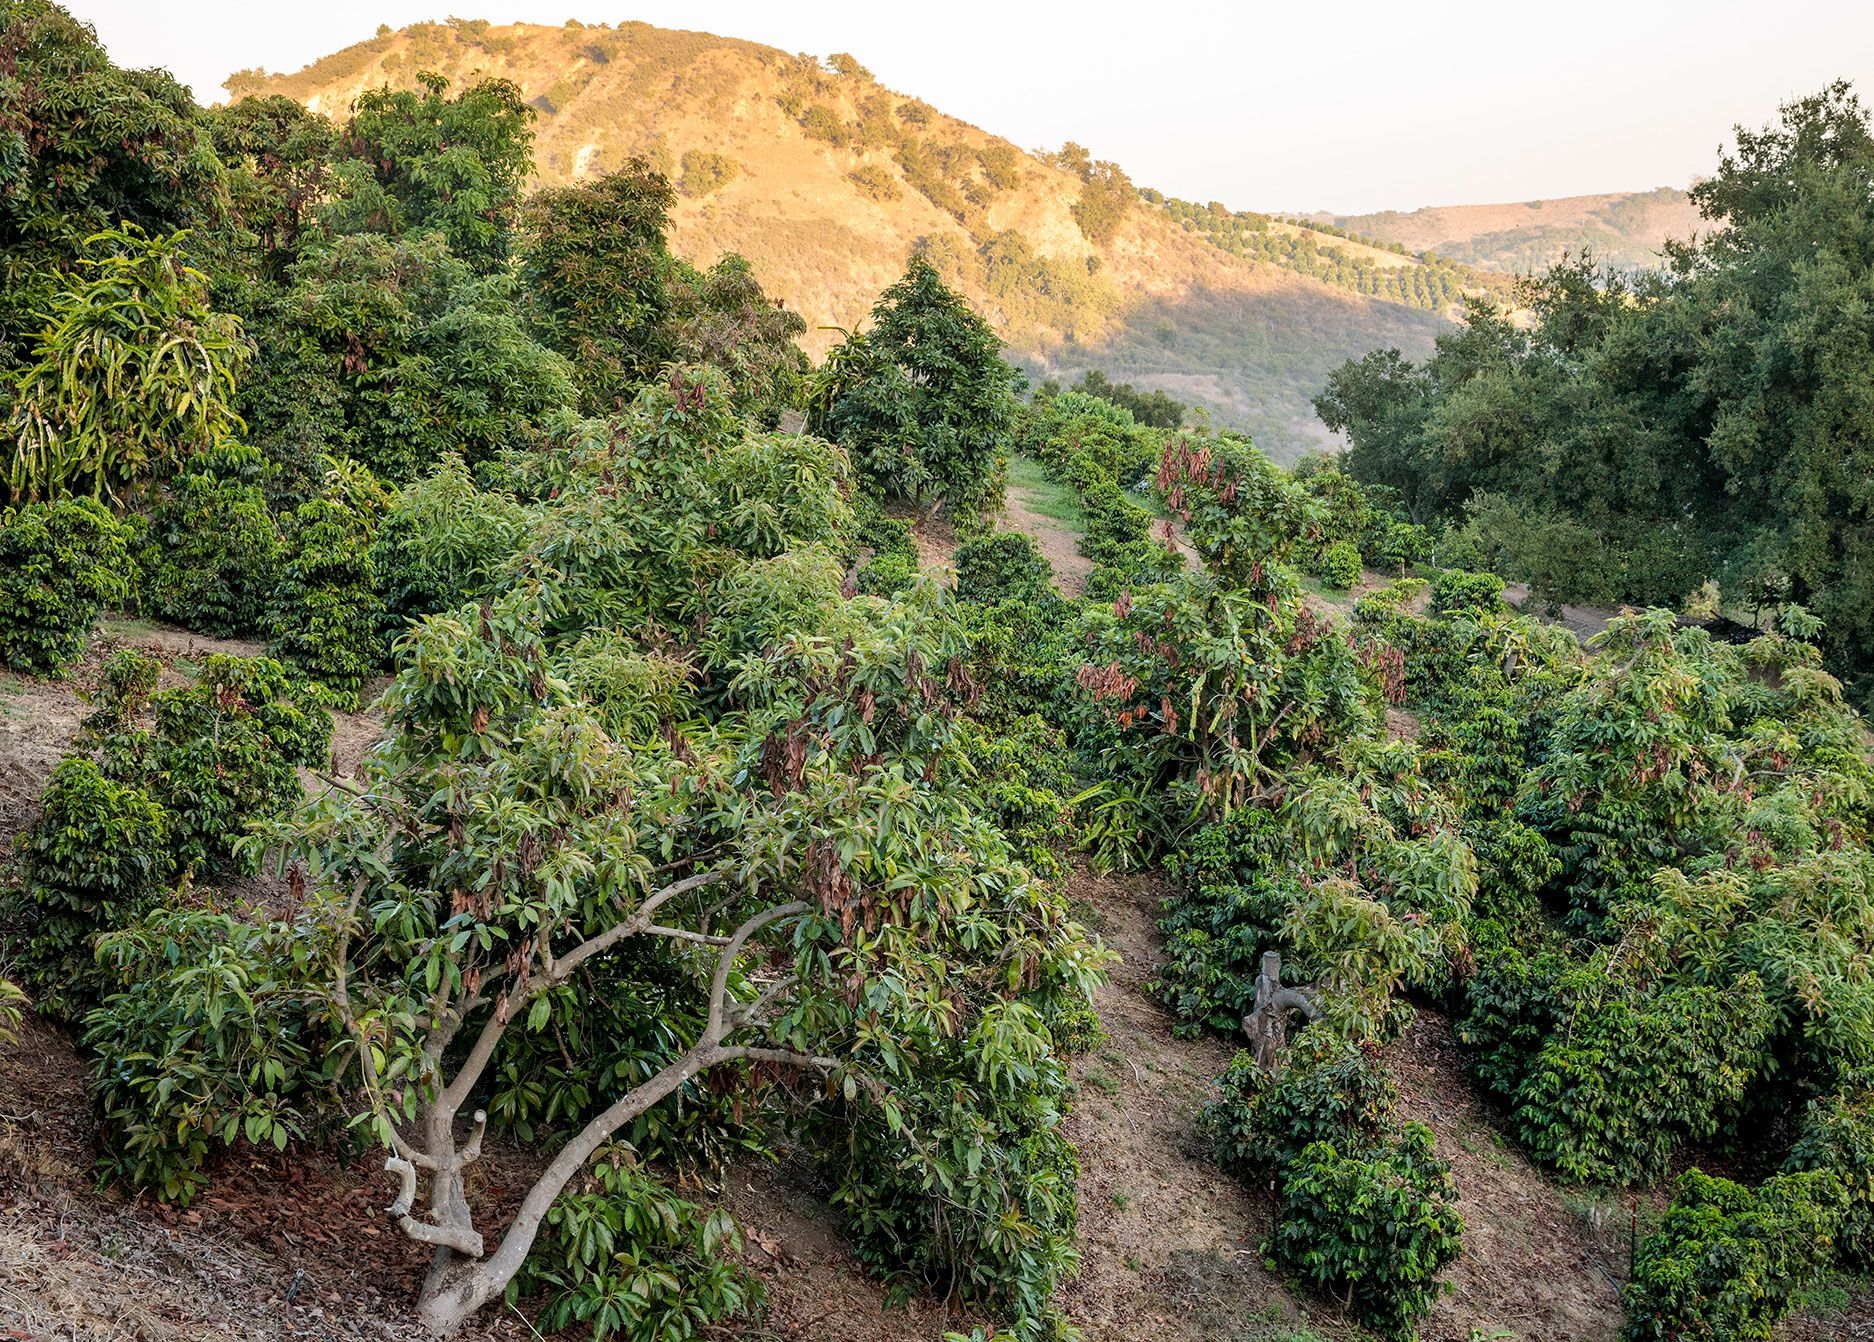 Frinj is one of several firms trying to grow coffee in Southern California.